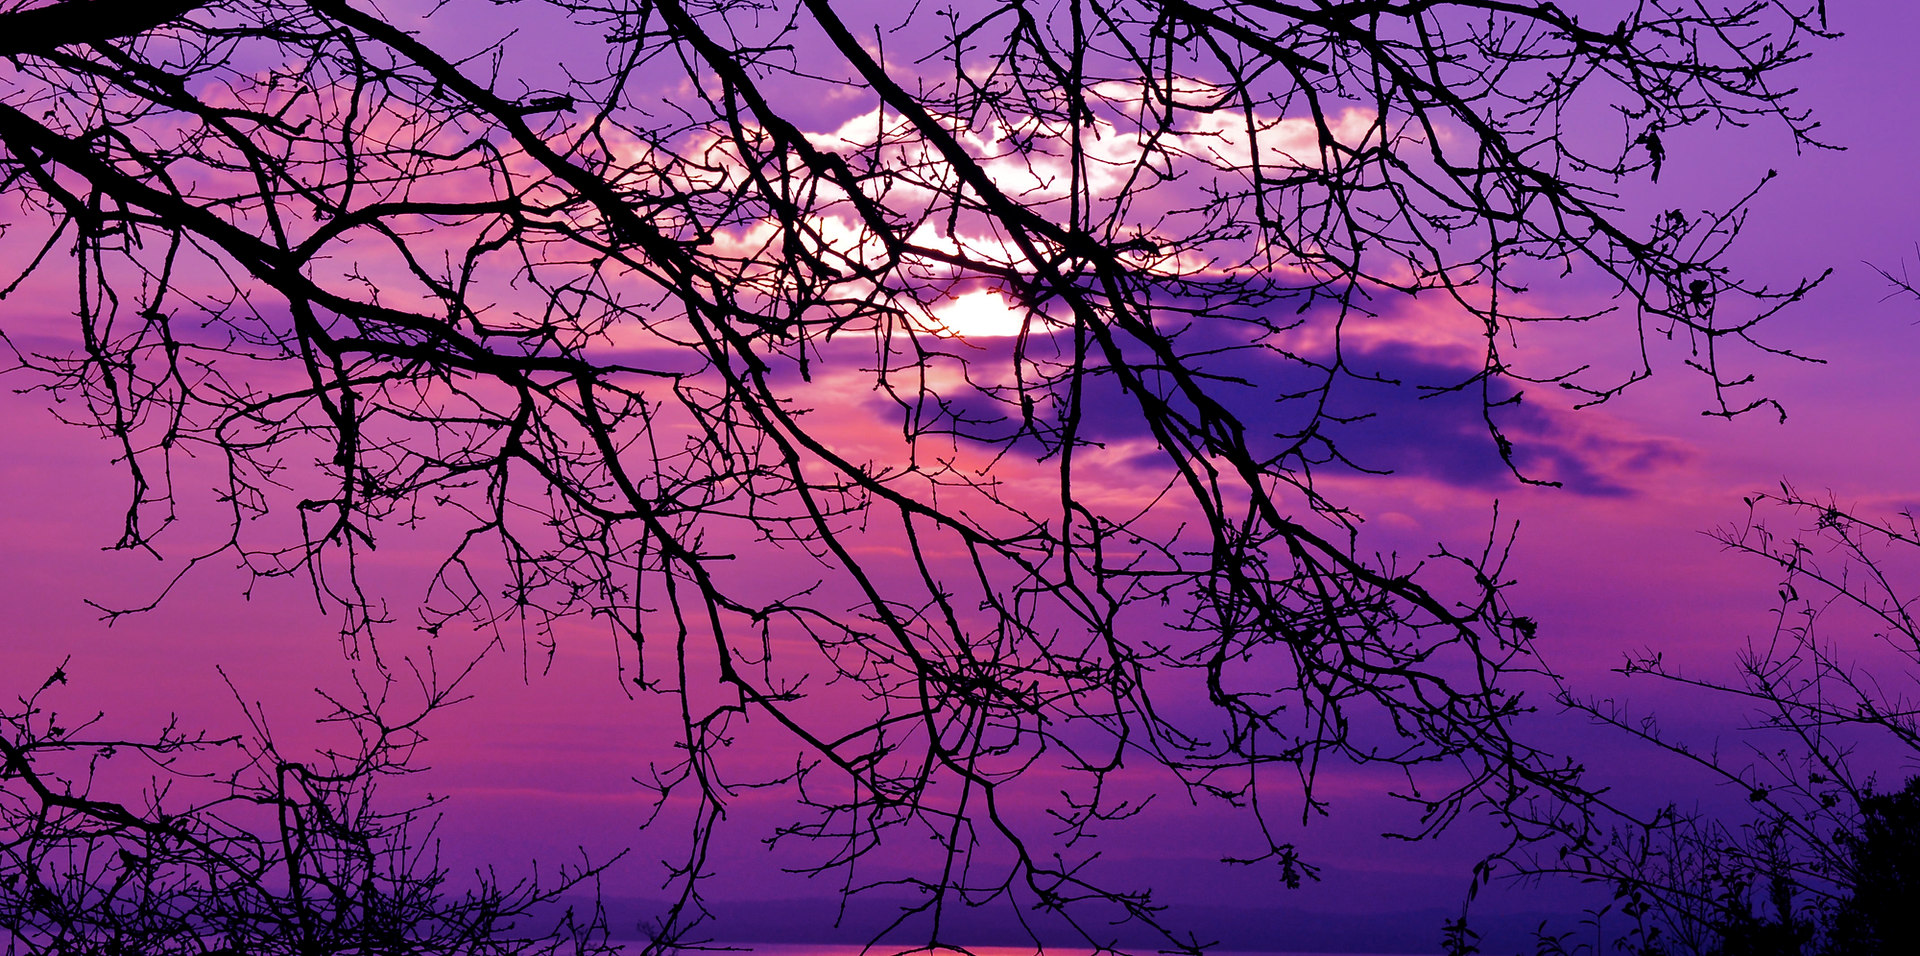 Artistic photo - Violet Sky at winter